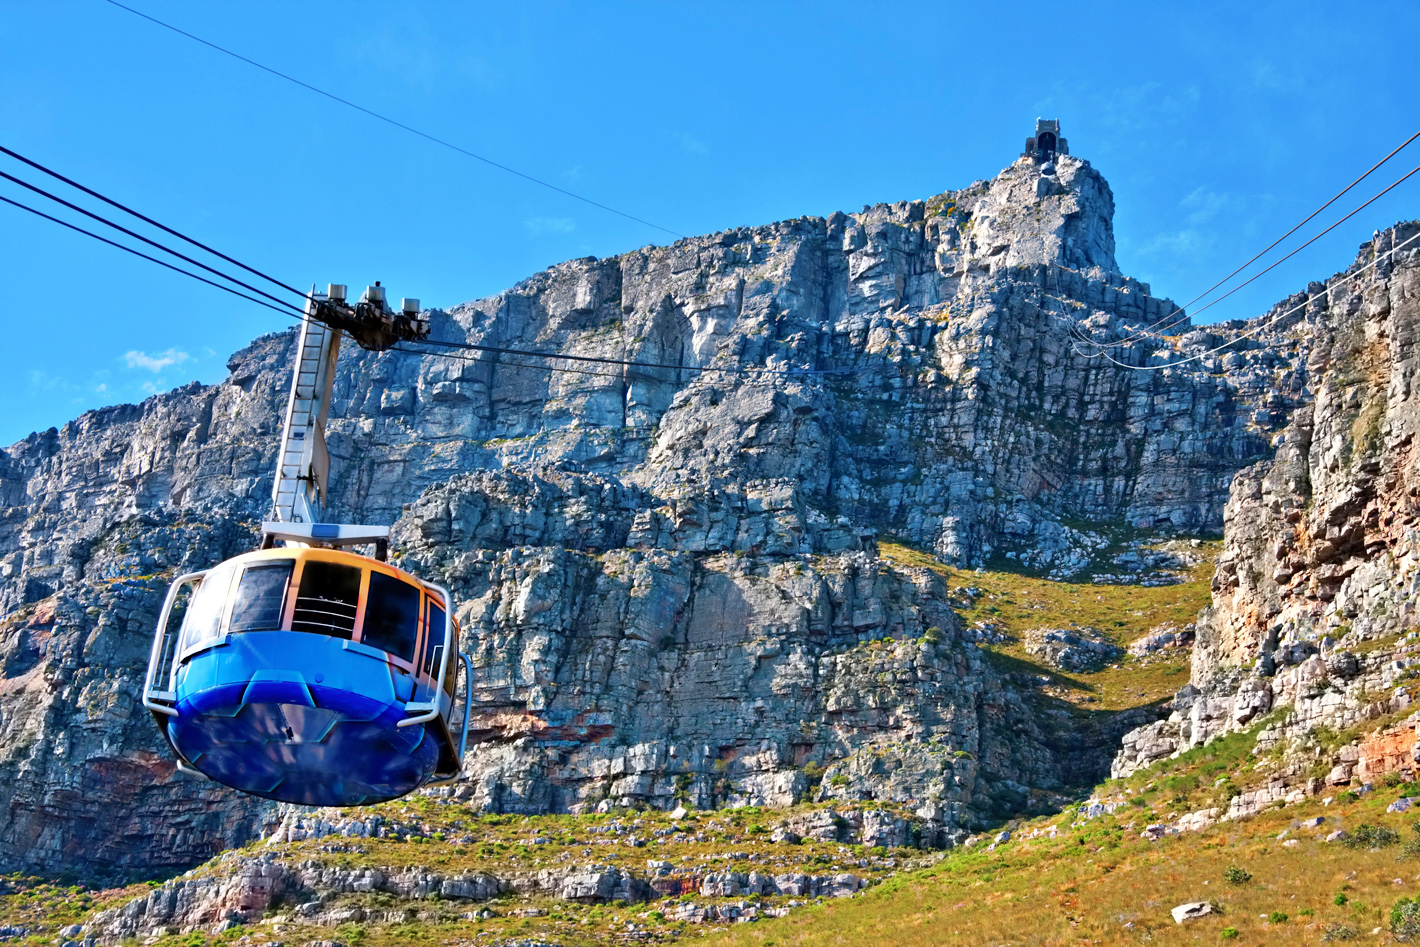 Cable car with table mountain in background